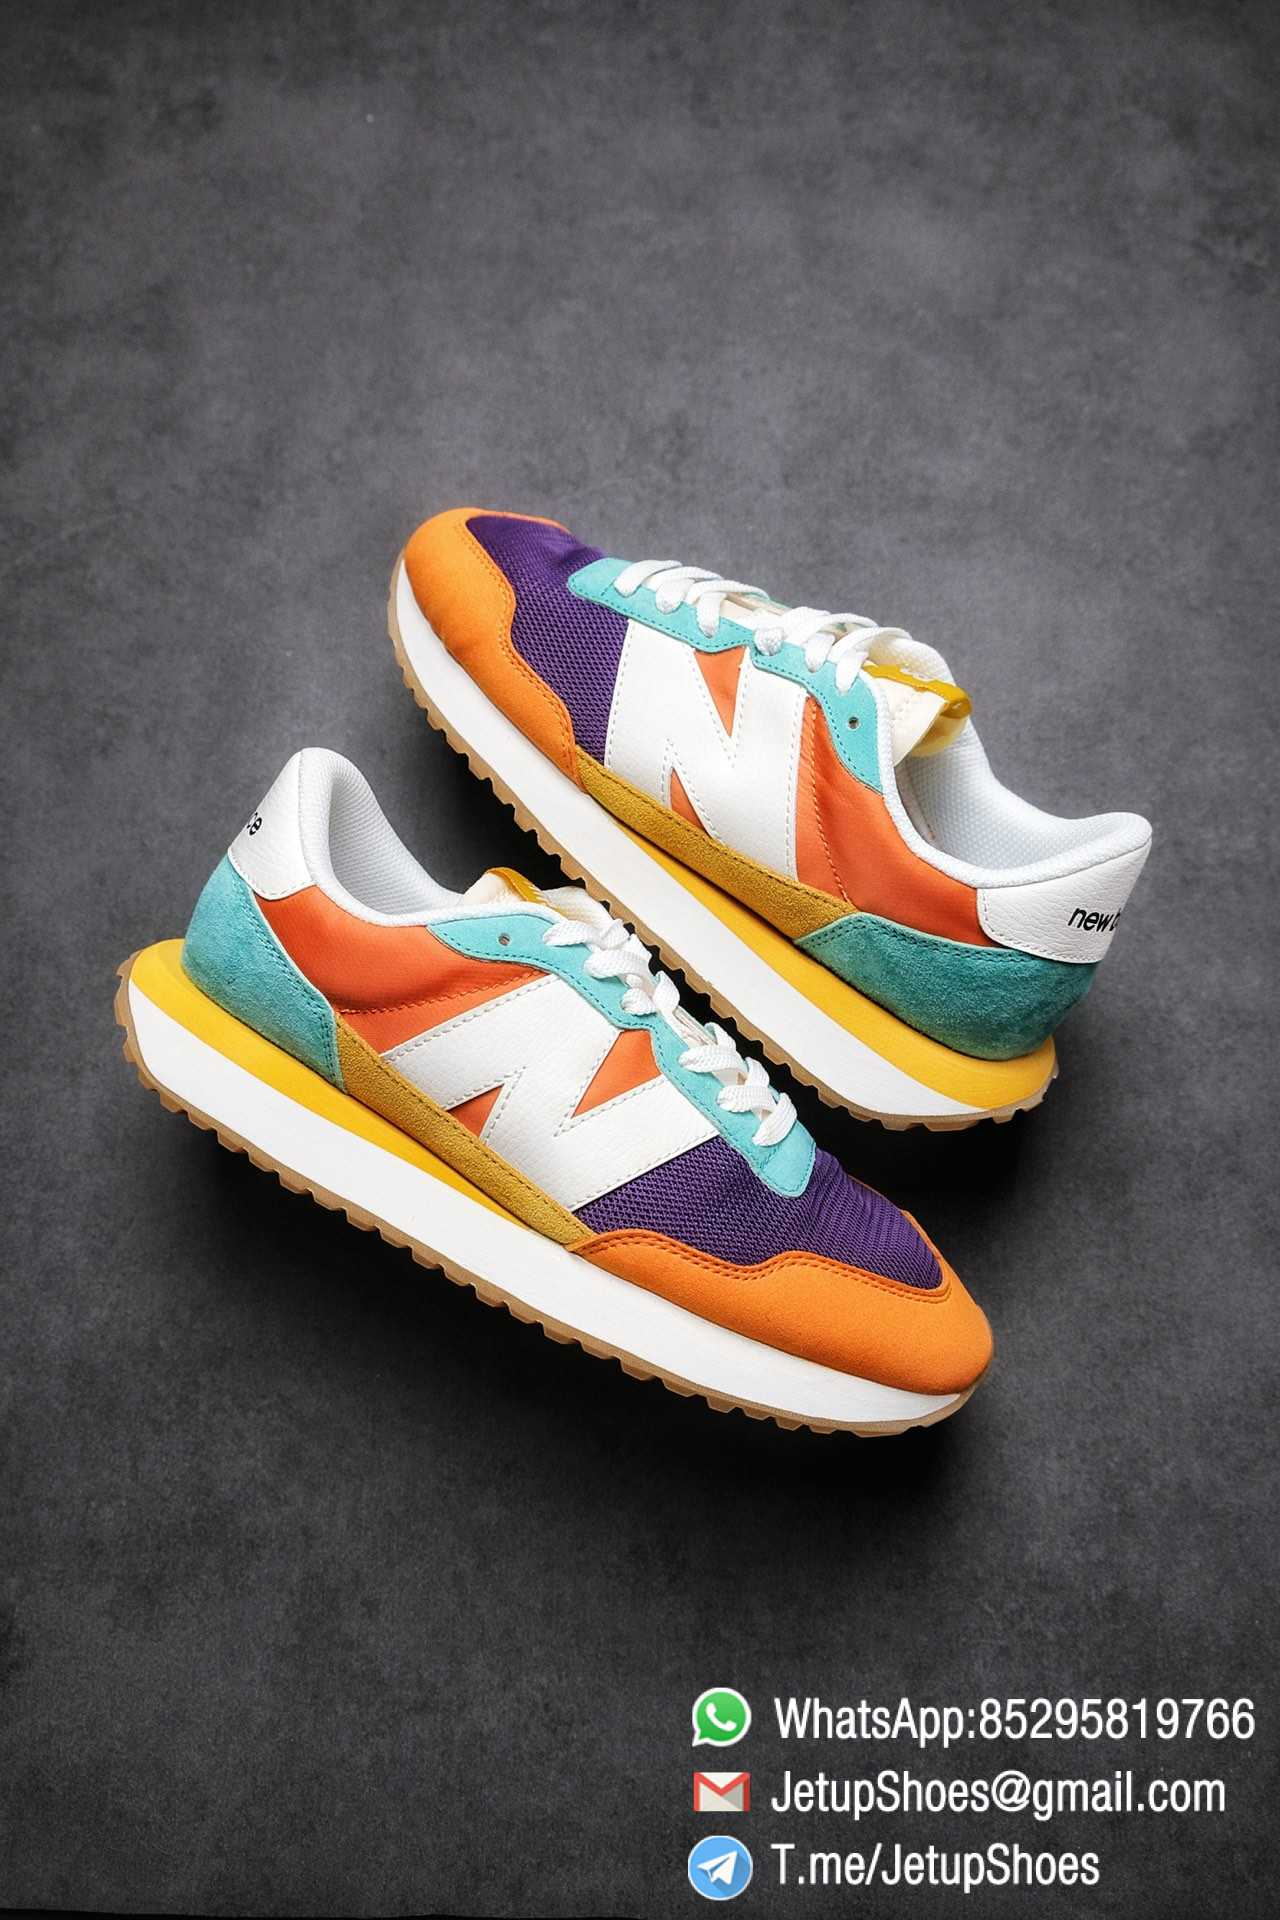 Best Replica New Balance 237 Yellow Blue Orange Suede Purple Mesh Stitching SKU MS237LB2 High Quality Fake Multi Color Running Shoes 01